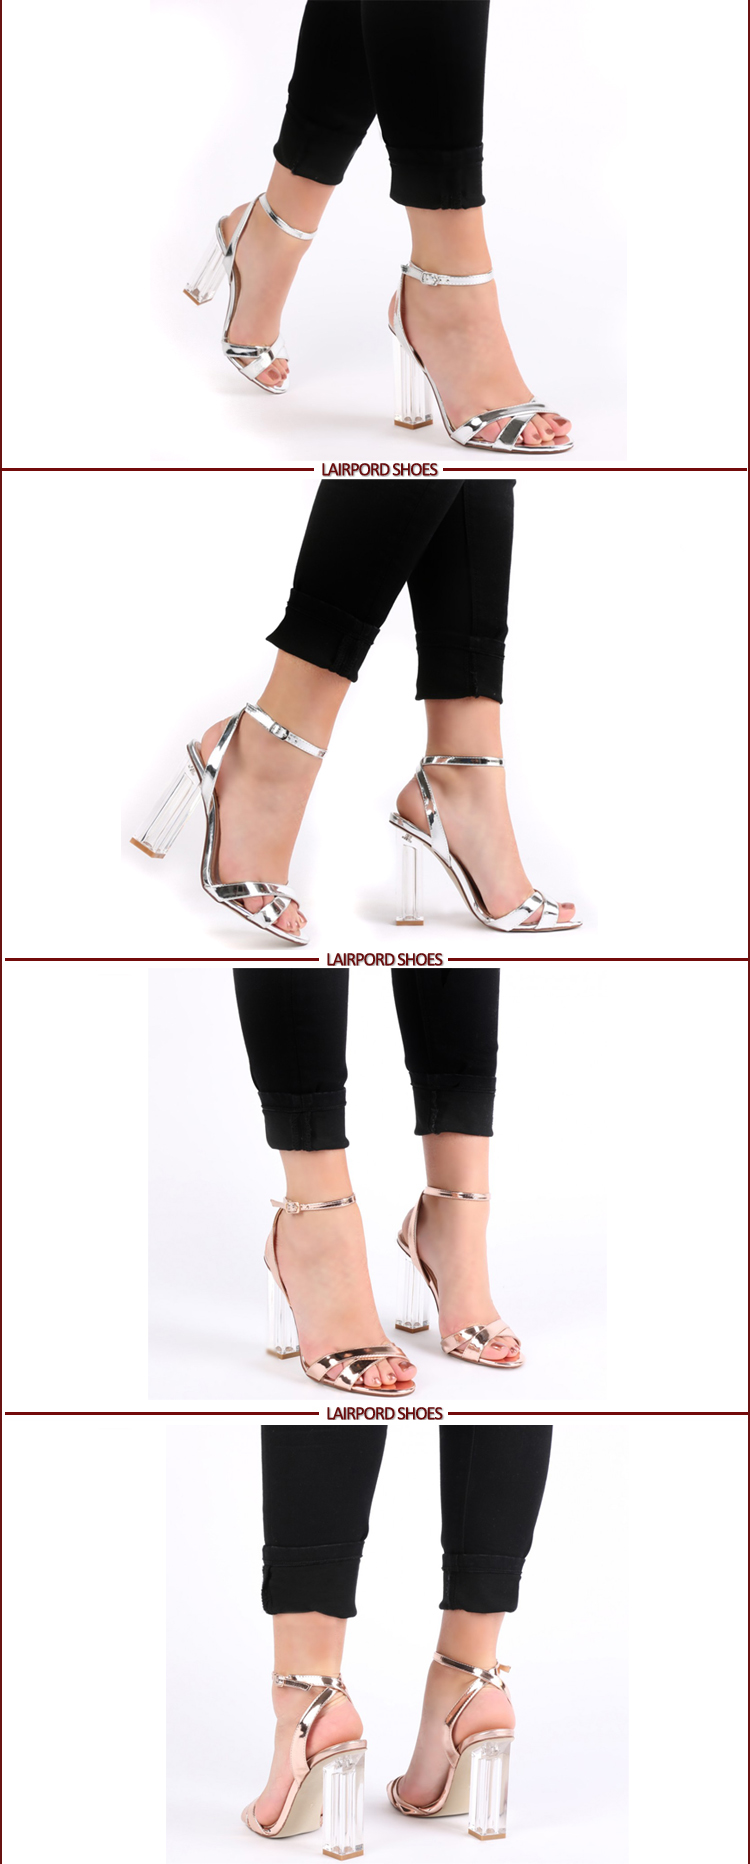 roma style ladies shoes